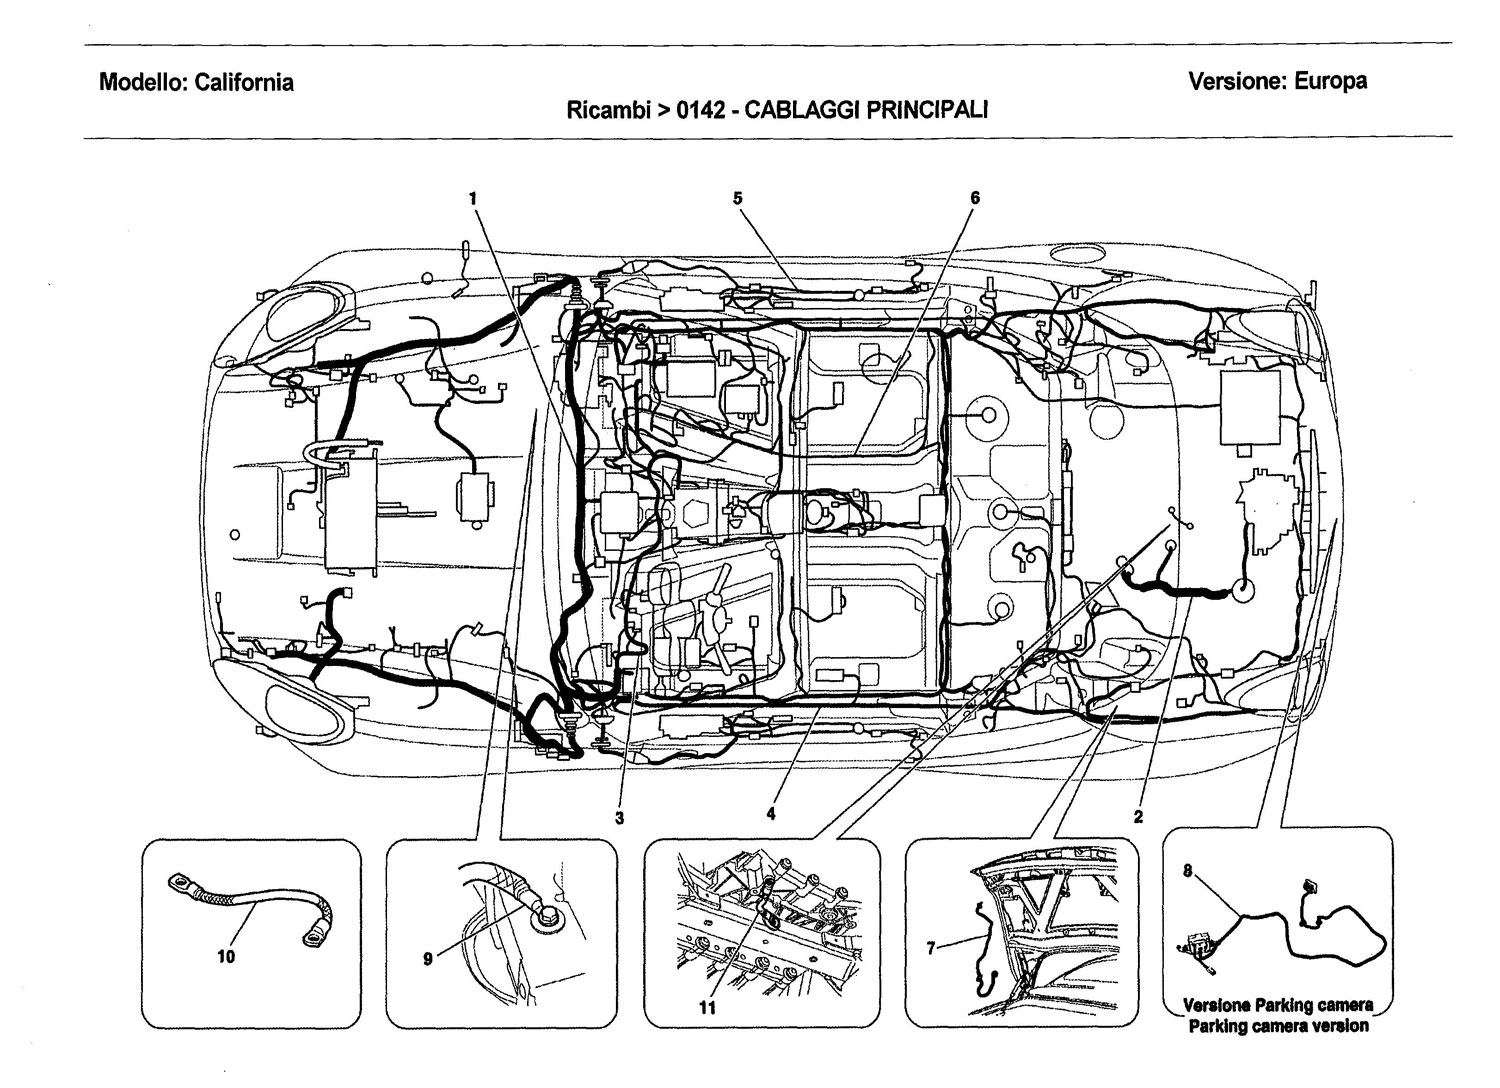 Service manual [2010 Ferrari California Wiring Diagram Pdf